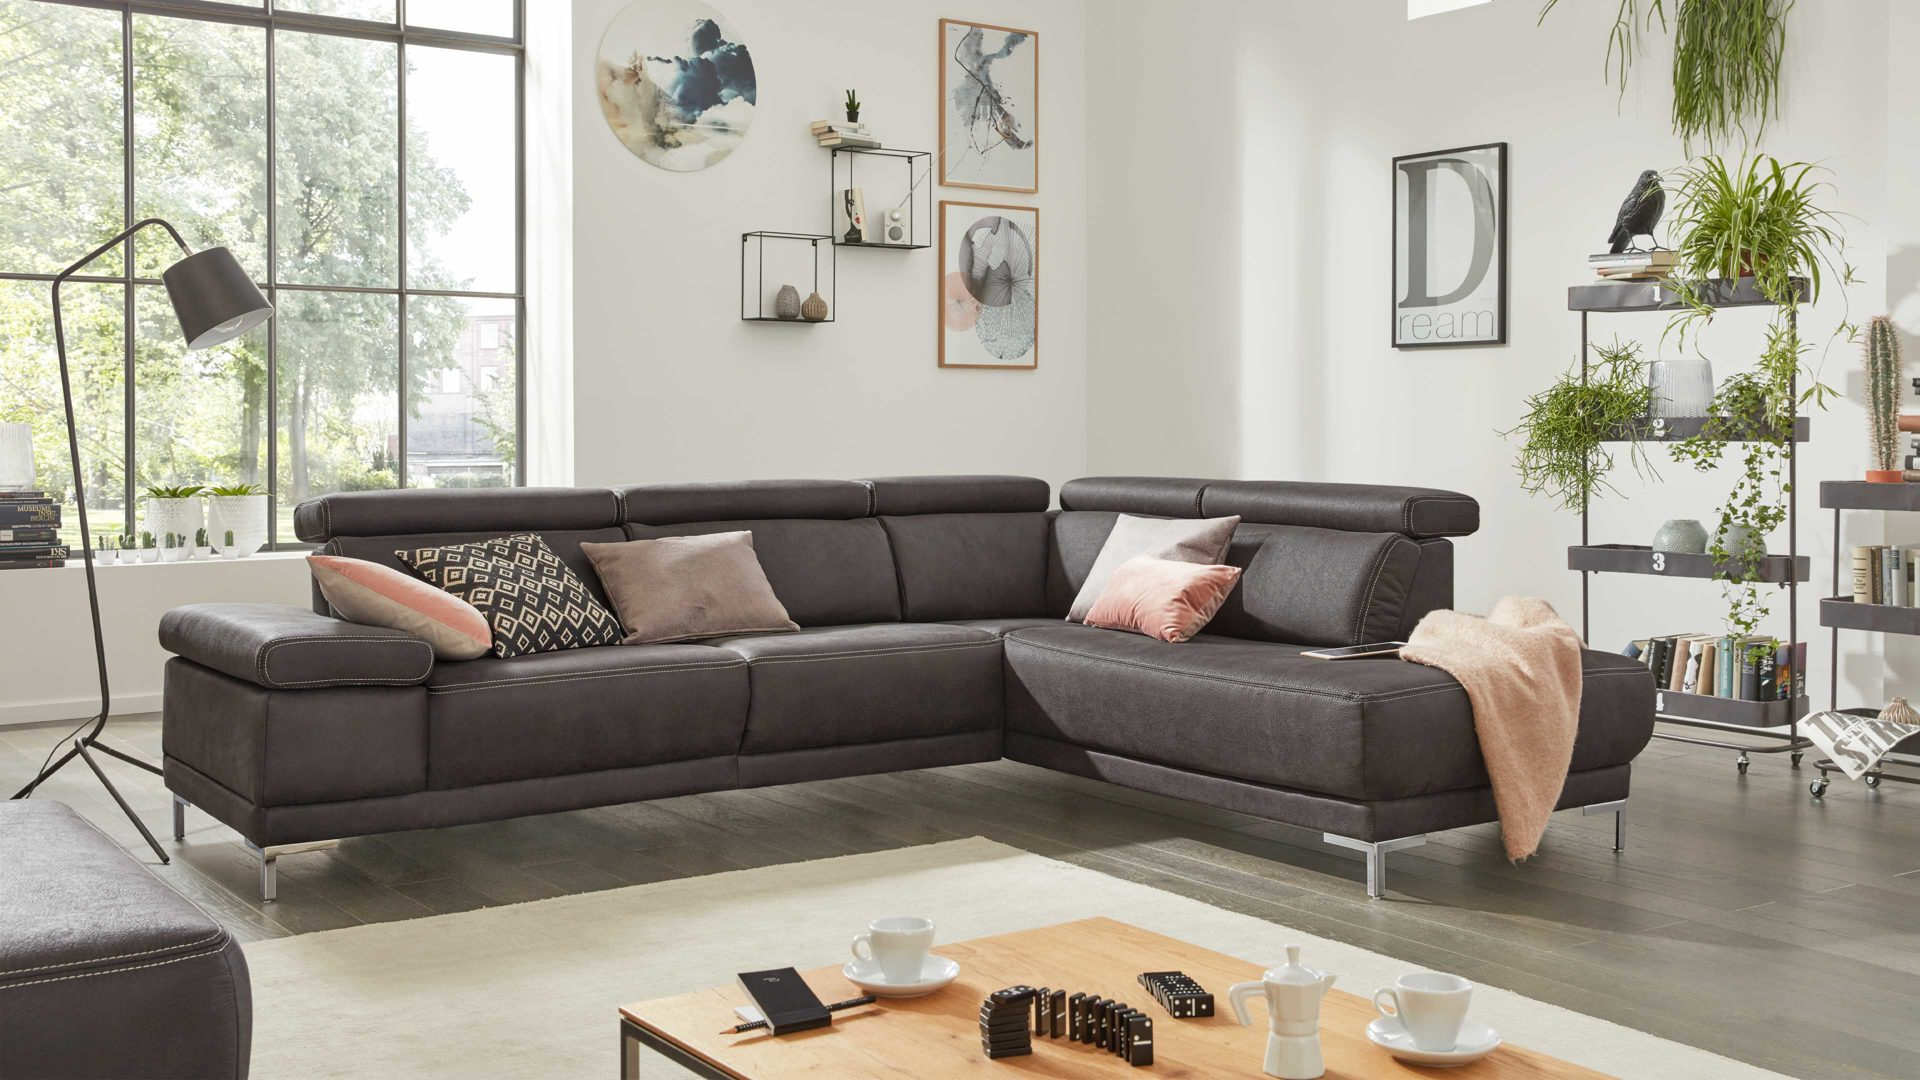 Interliving Sofa Serie 4252 Eckkombination Anthrazitfarbener Stoffbezug